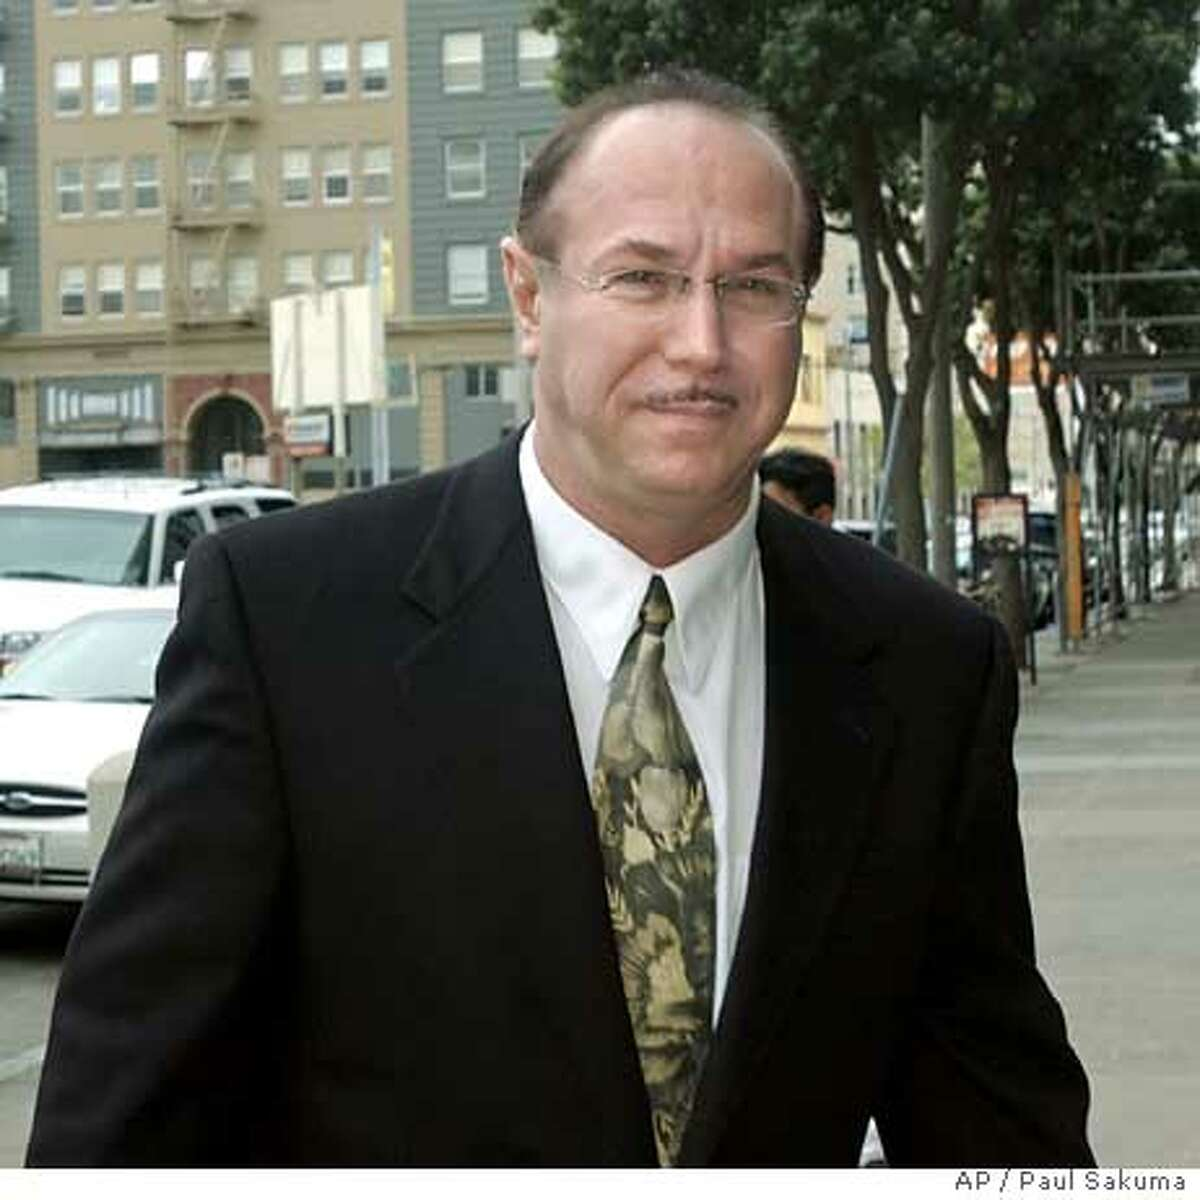 ** FILE ** Victor Conte, San Francisco Giants Barry Bonds' nutritional adviser and founder of the Bay Area Laboratory Co-Operative (BALCO) arrives at the Federal Courthouse in San Francisco, in this March 26, 2004 photo. The lack of a plea agreement between prosecutors and Conte, accused of distributing steroids to top athletes may make it more difficult for anti-doping authorities to build drug cases against track stars. Conte, founder of the Bay Area Laboratory Co-Operative, and his attorneys met with federal authorities for about three hours Thursday, June 4, 2004, in San Jose, Calif., but did not reach any deal. (AP Photo/Paul Sakuma)